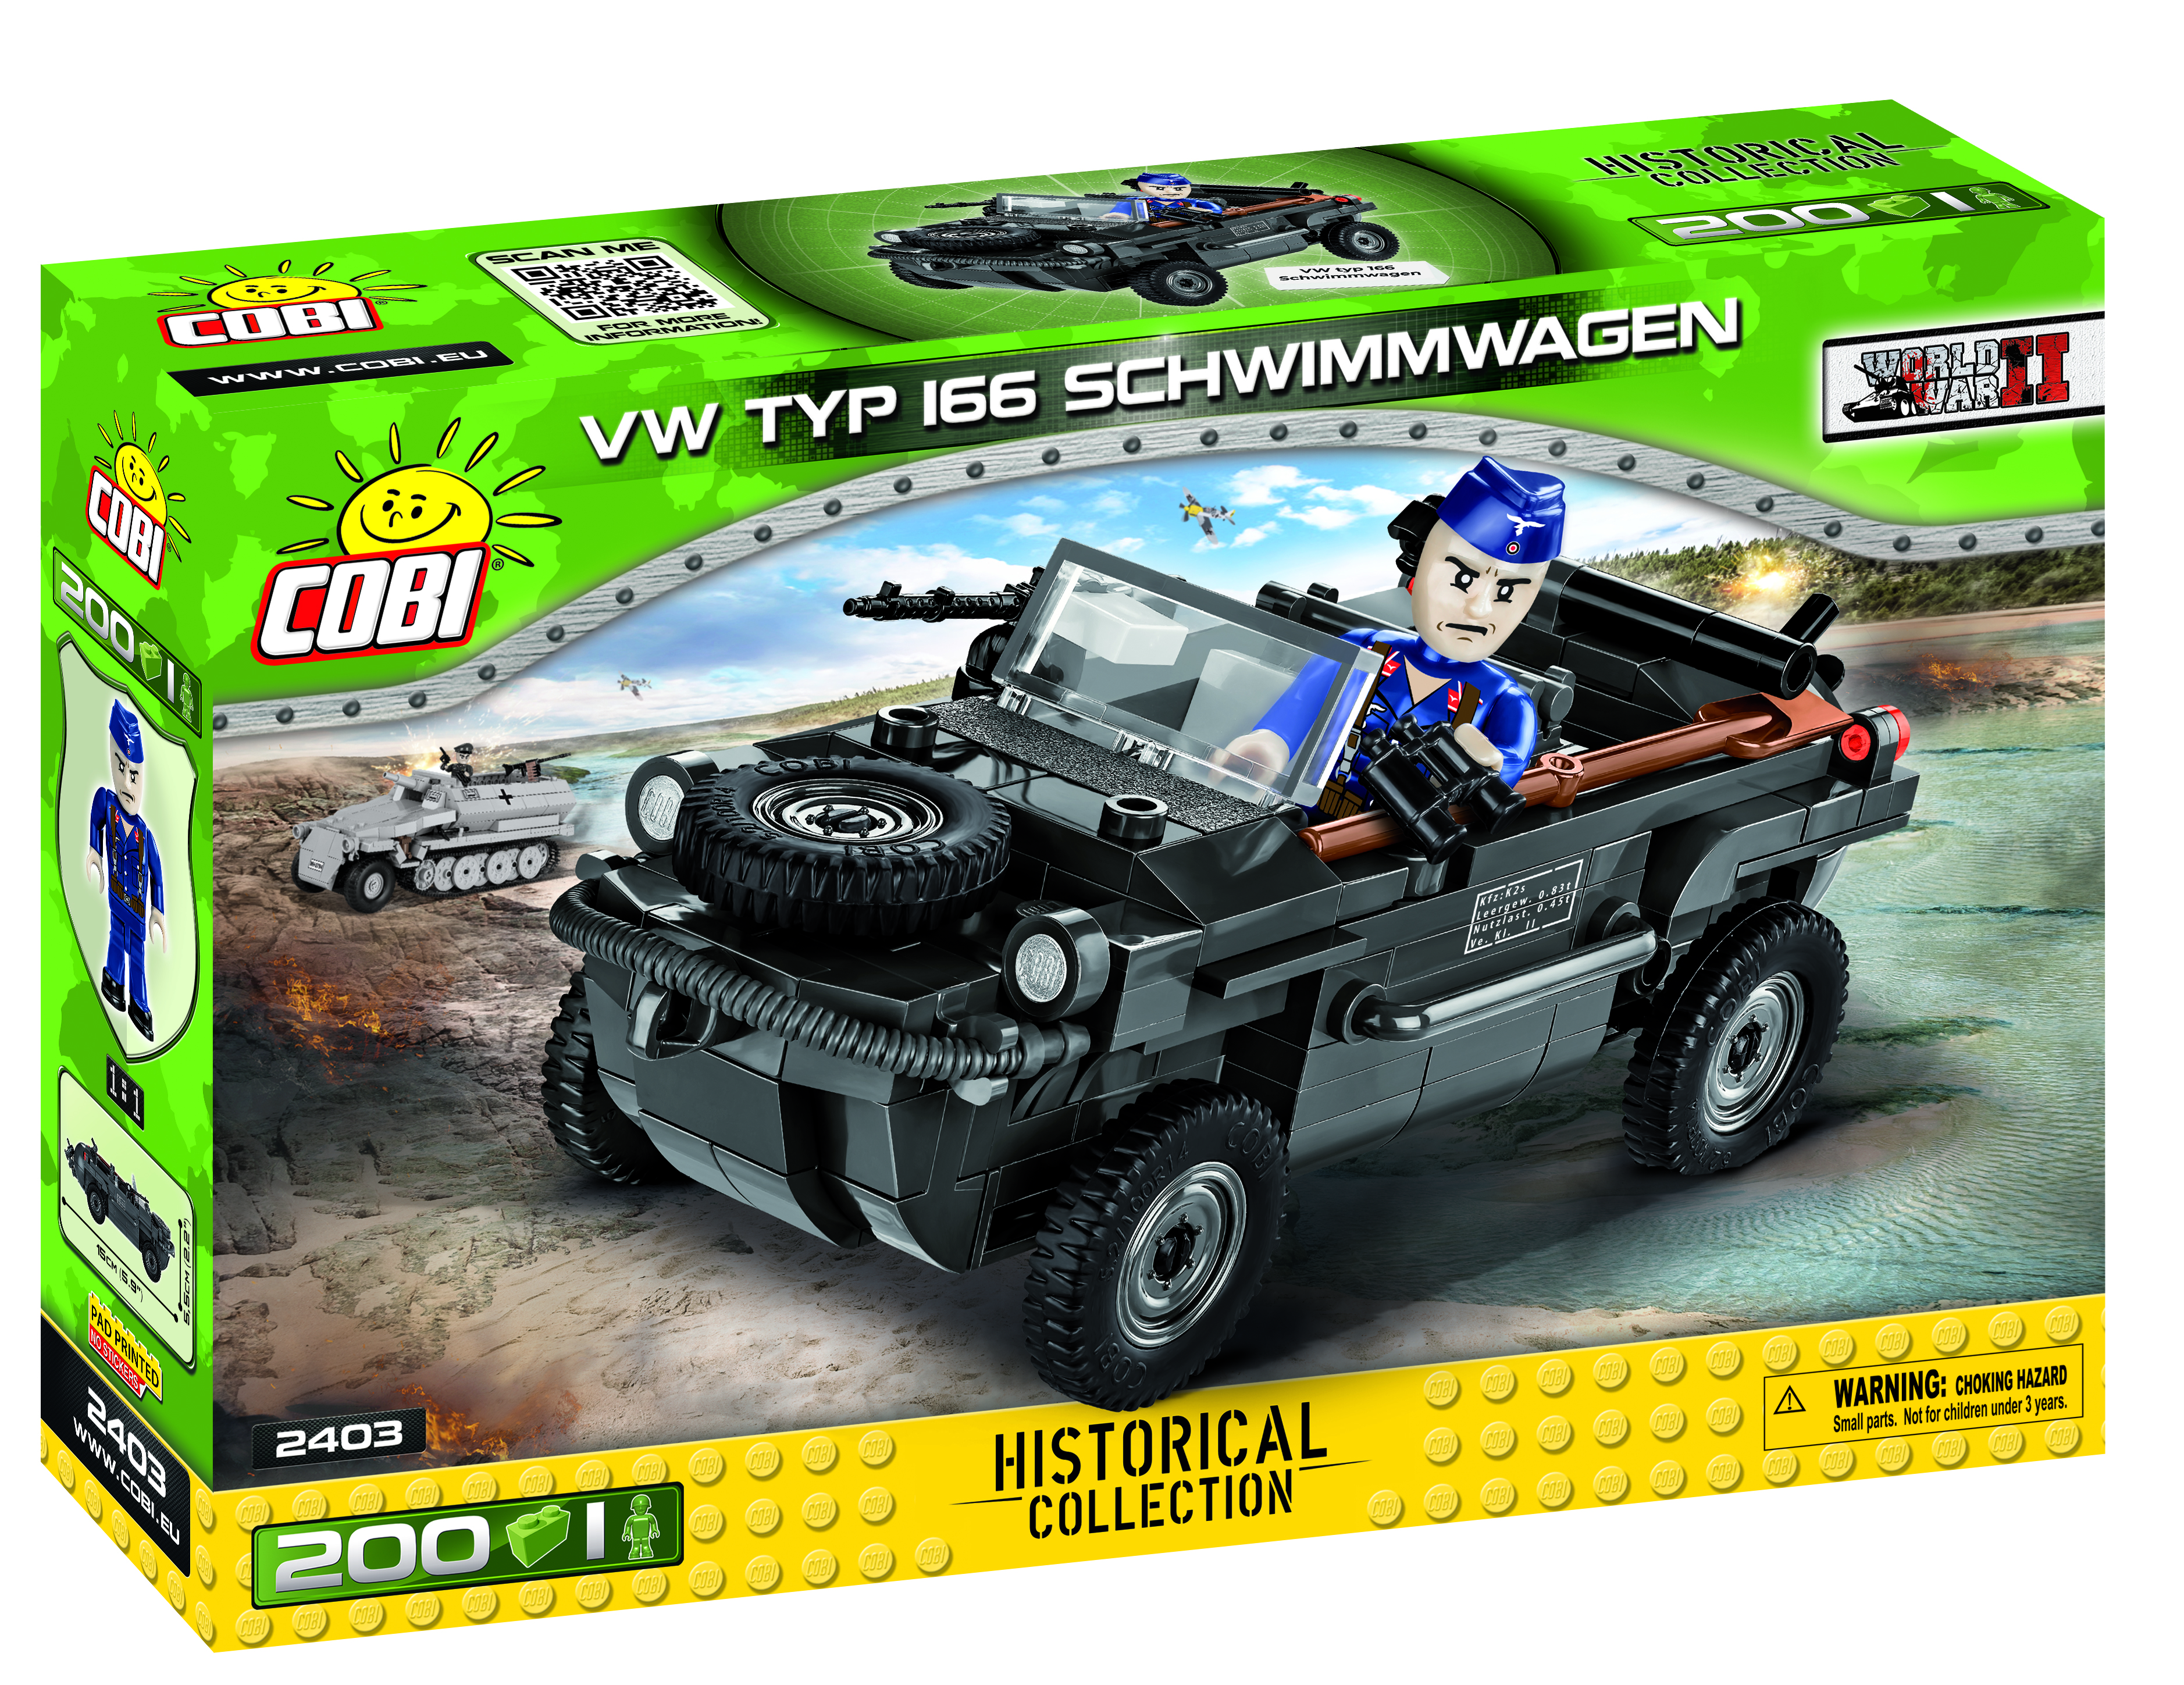 Cobi 2403 VW 166 Schwimmwagen Pad printed- no Stickers (Historical Collection WWII)